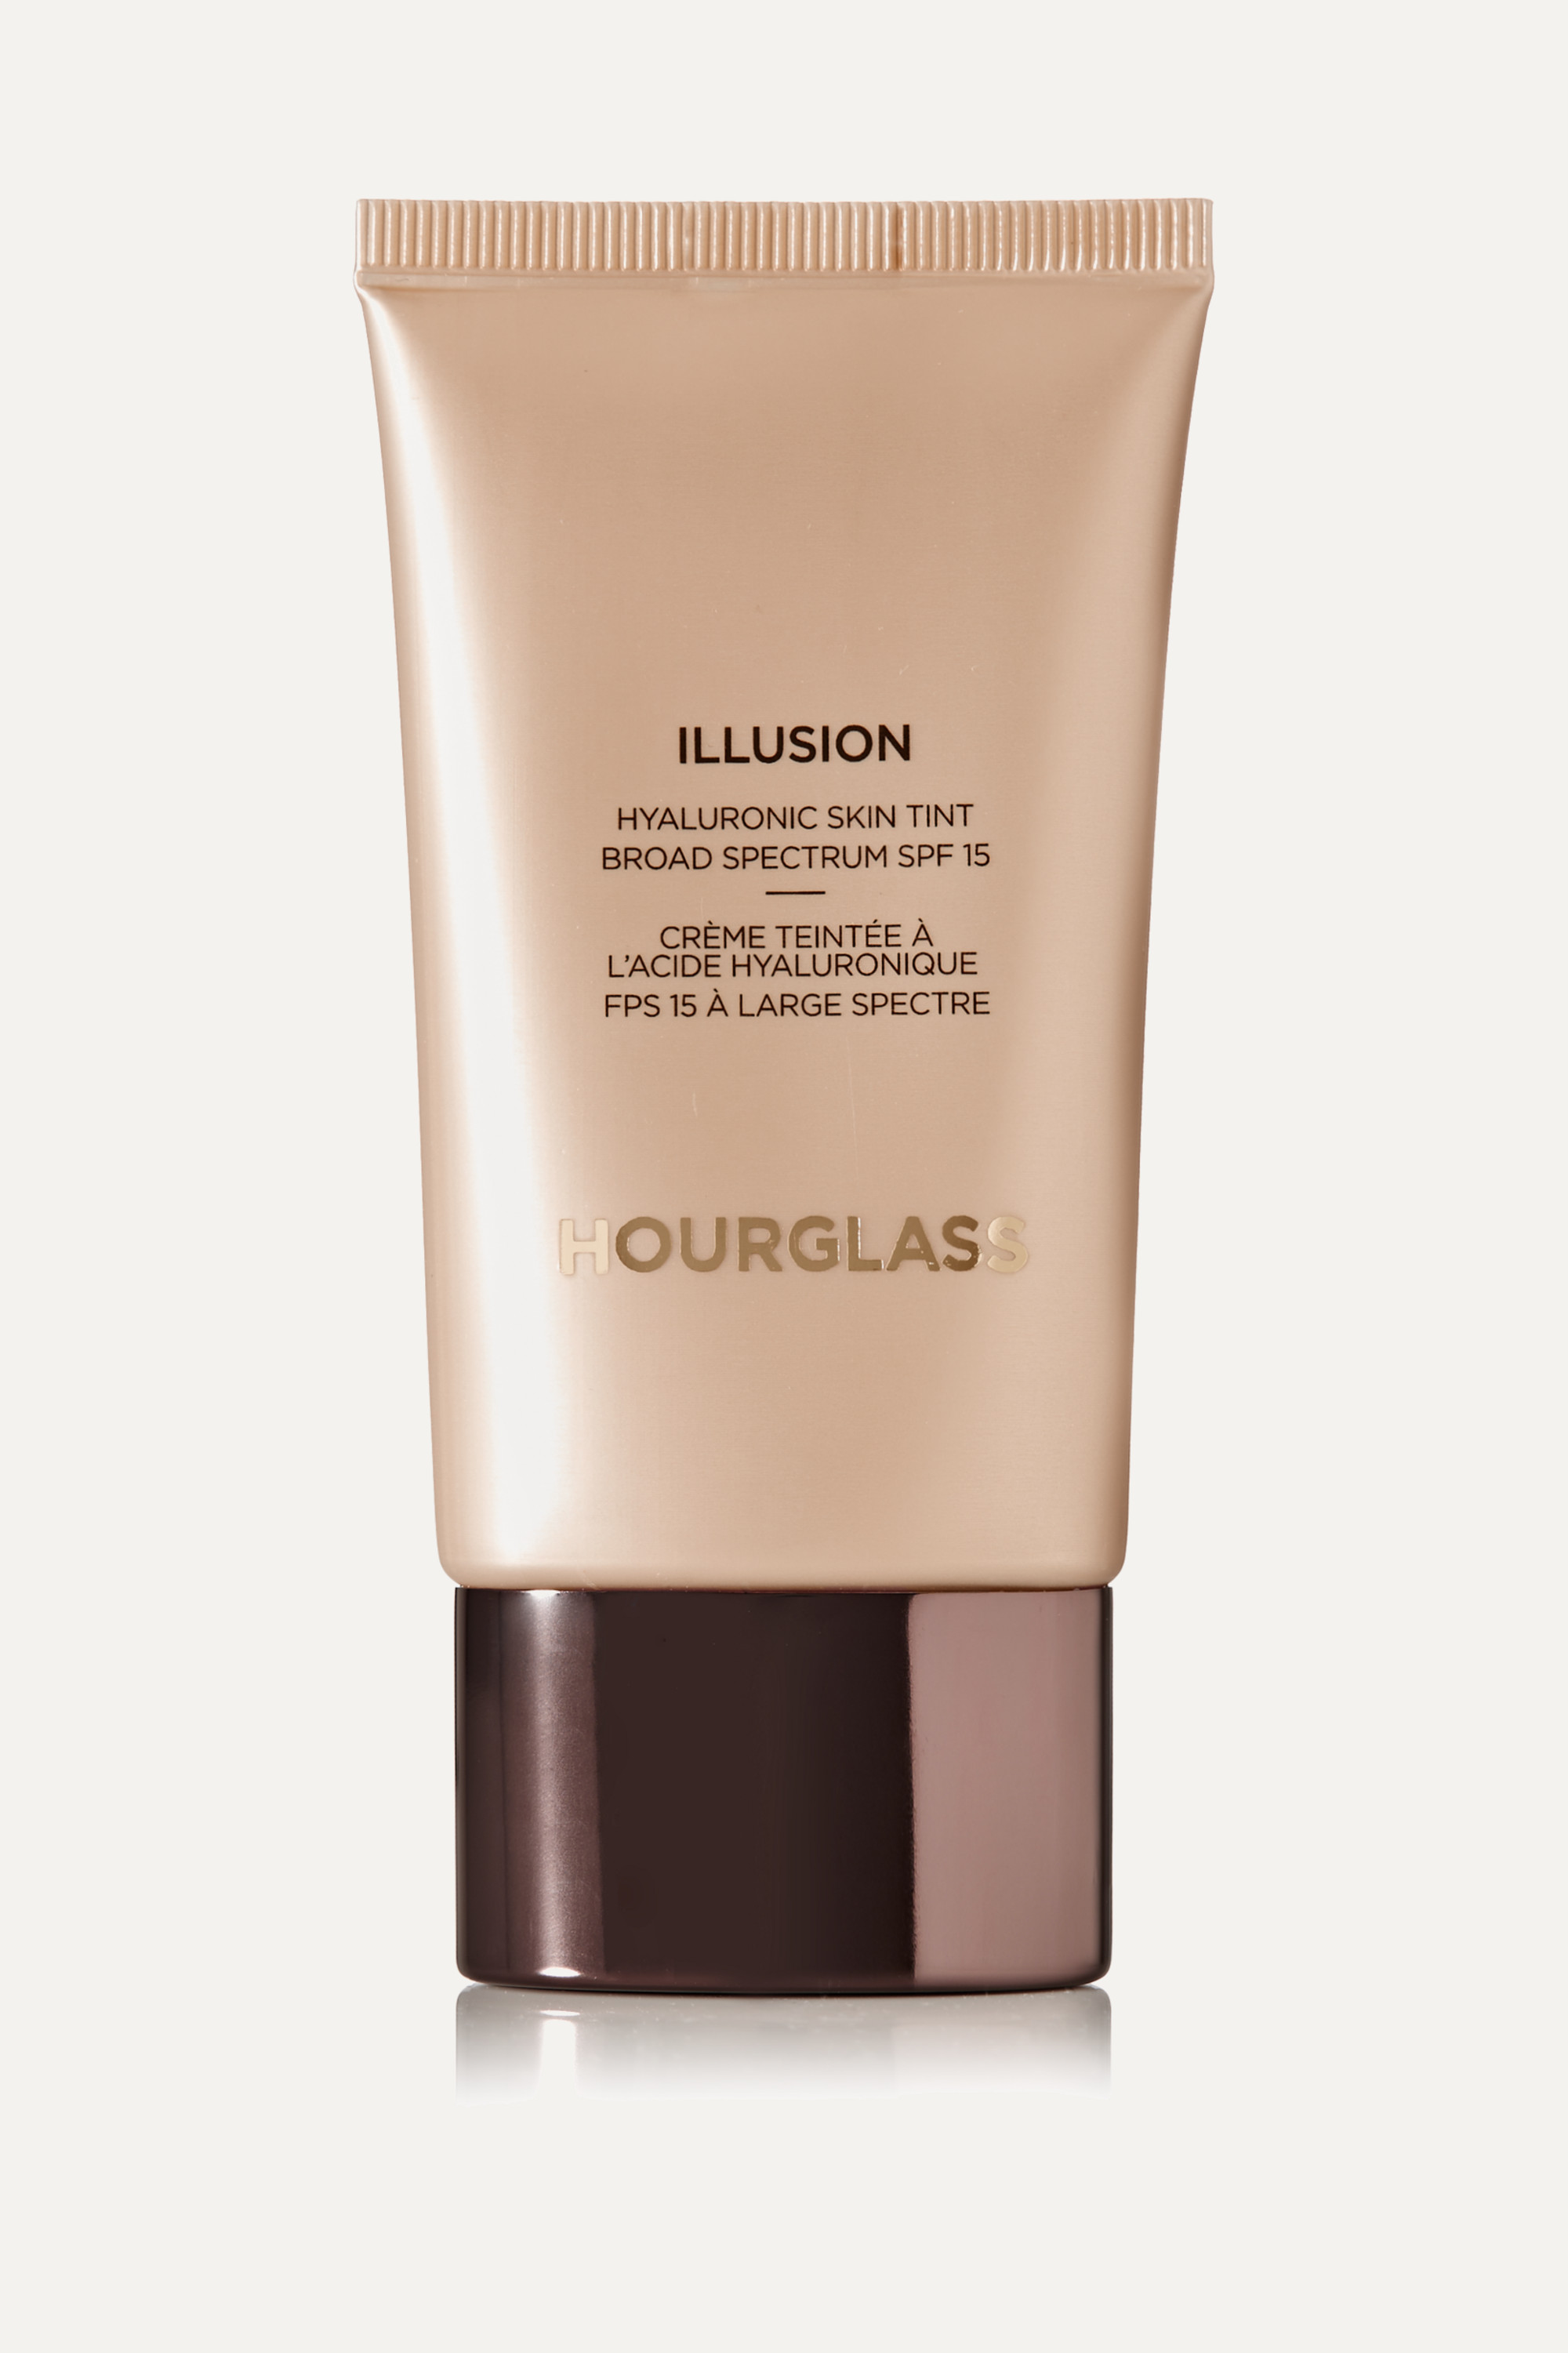 Hourglass Illusion® Hyaluronic Skin Tint SPF15 - Ivory, 30ml